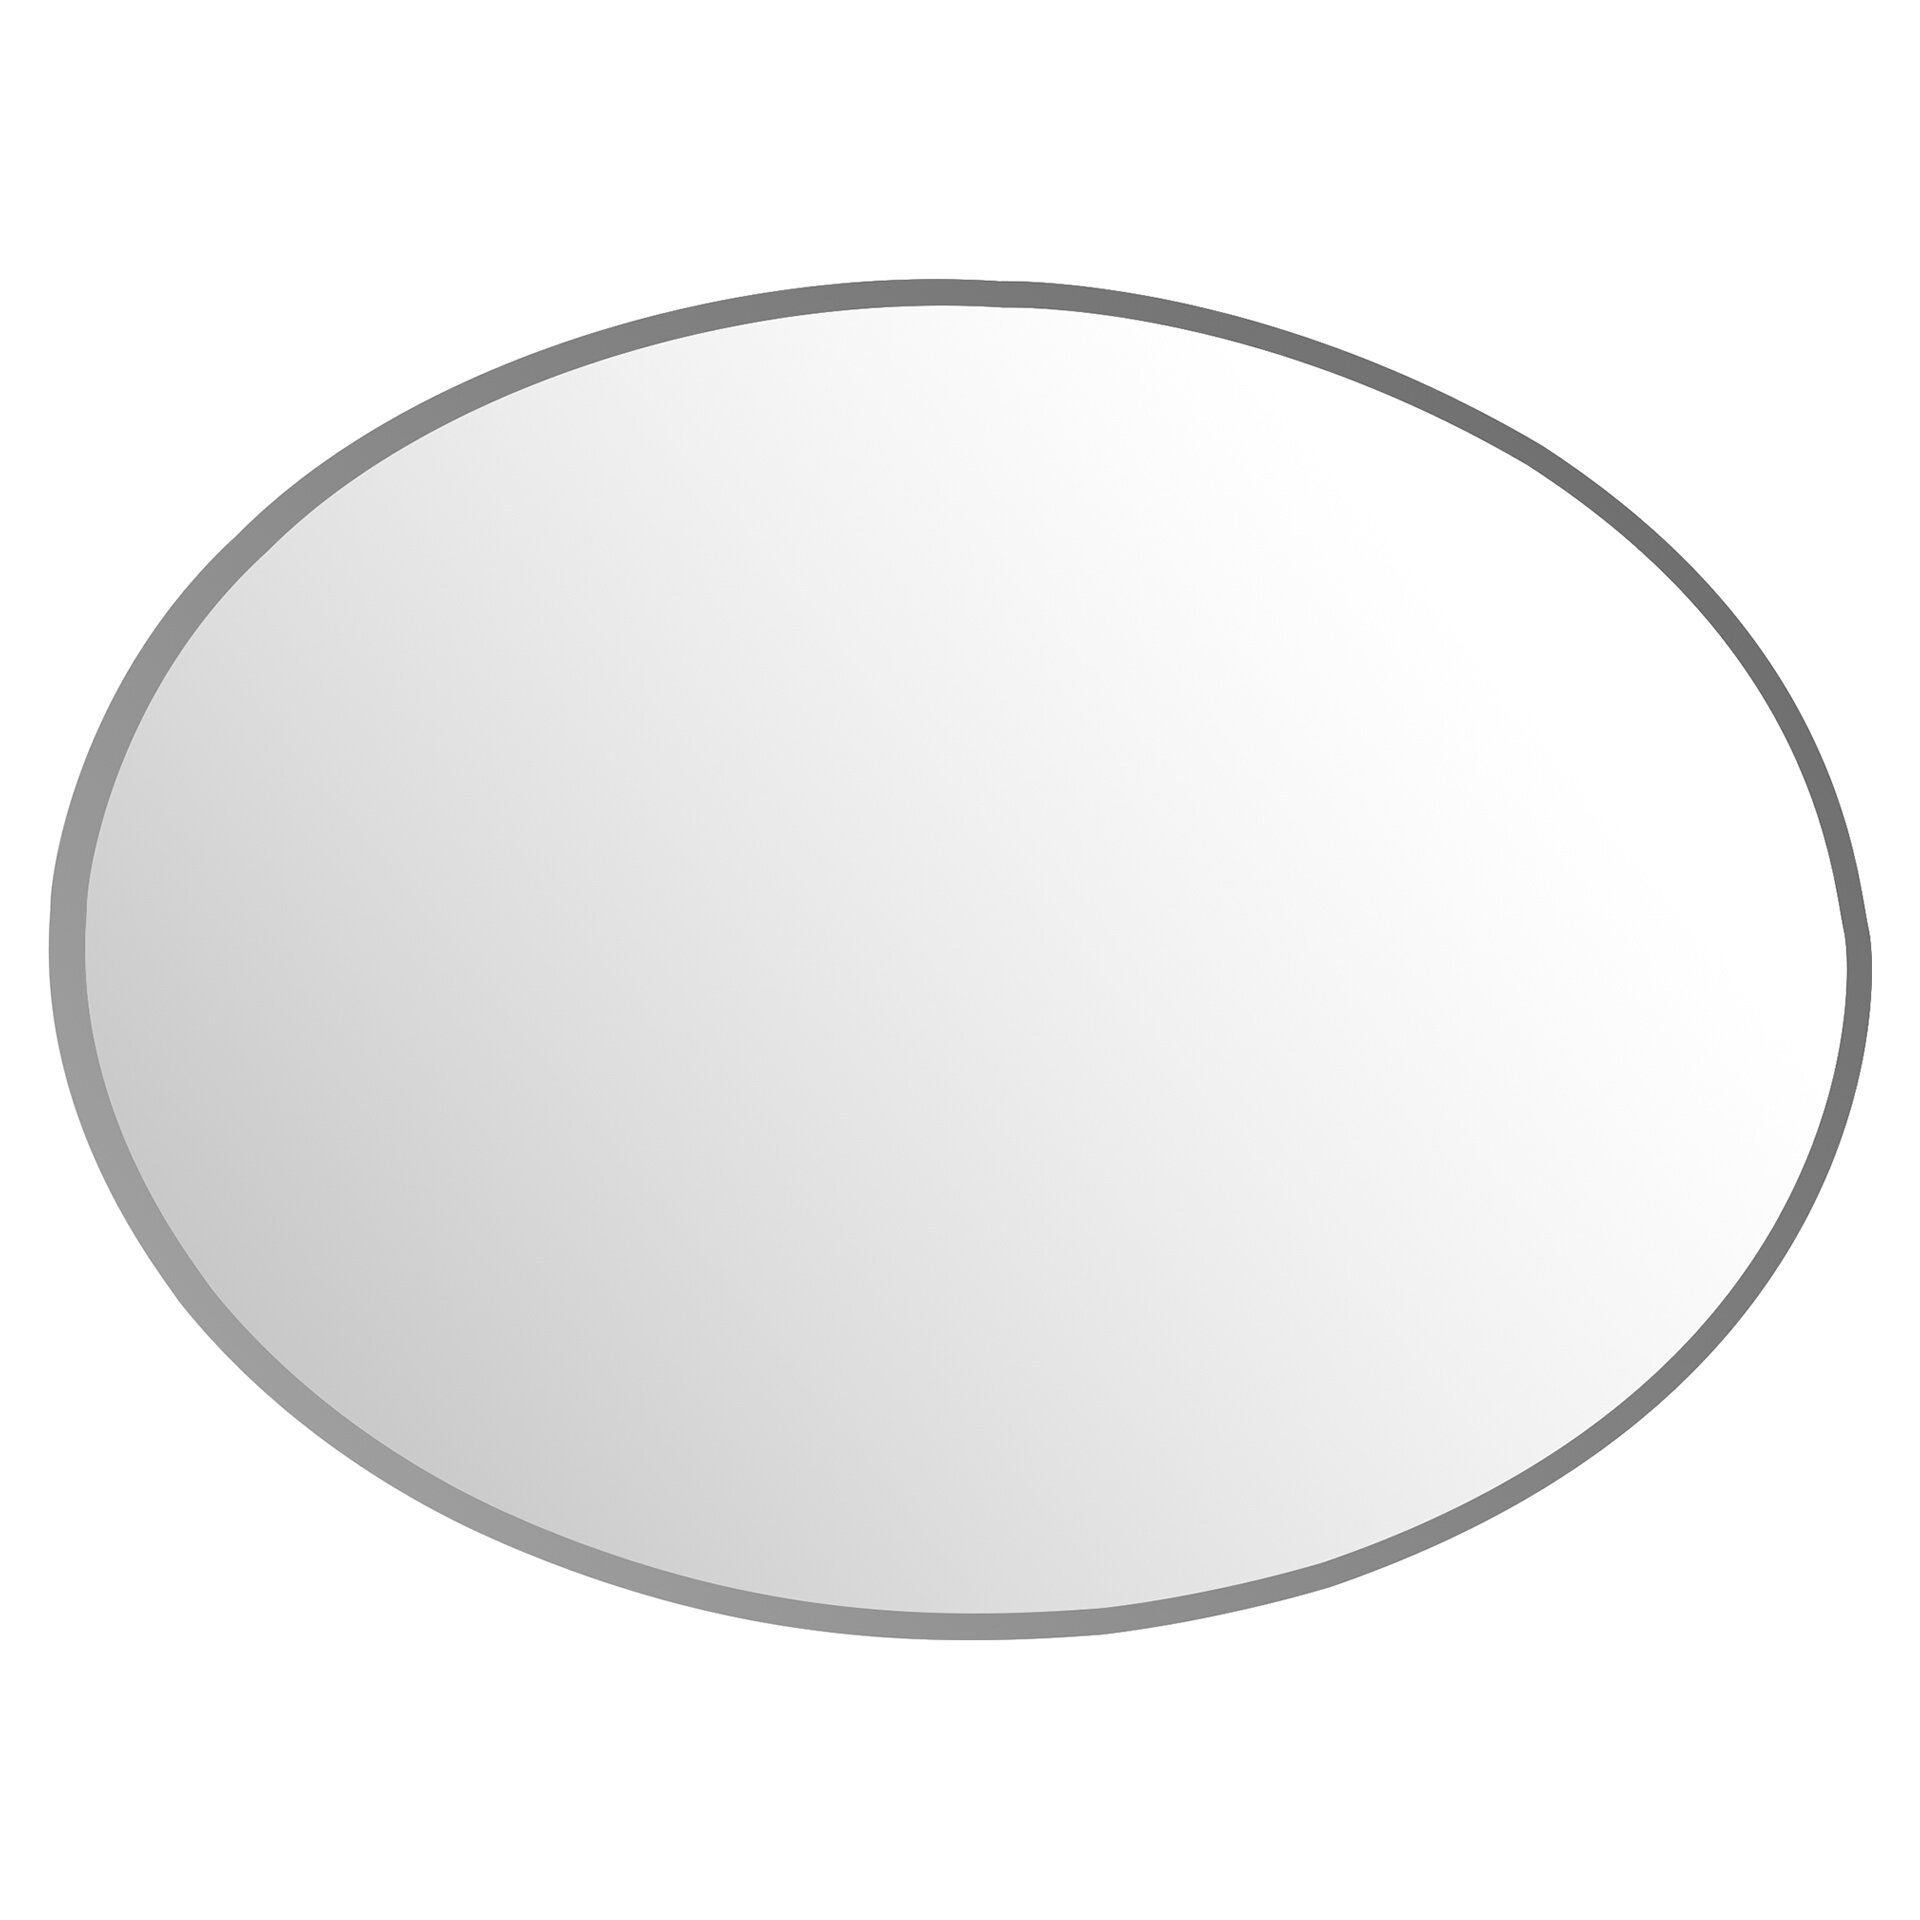 Frameless Magnifying Glasses : Red Barrel Studio Frameless Oval Wall Mirror & Reviews ...